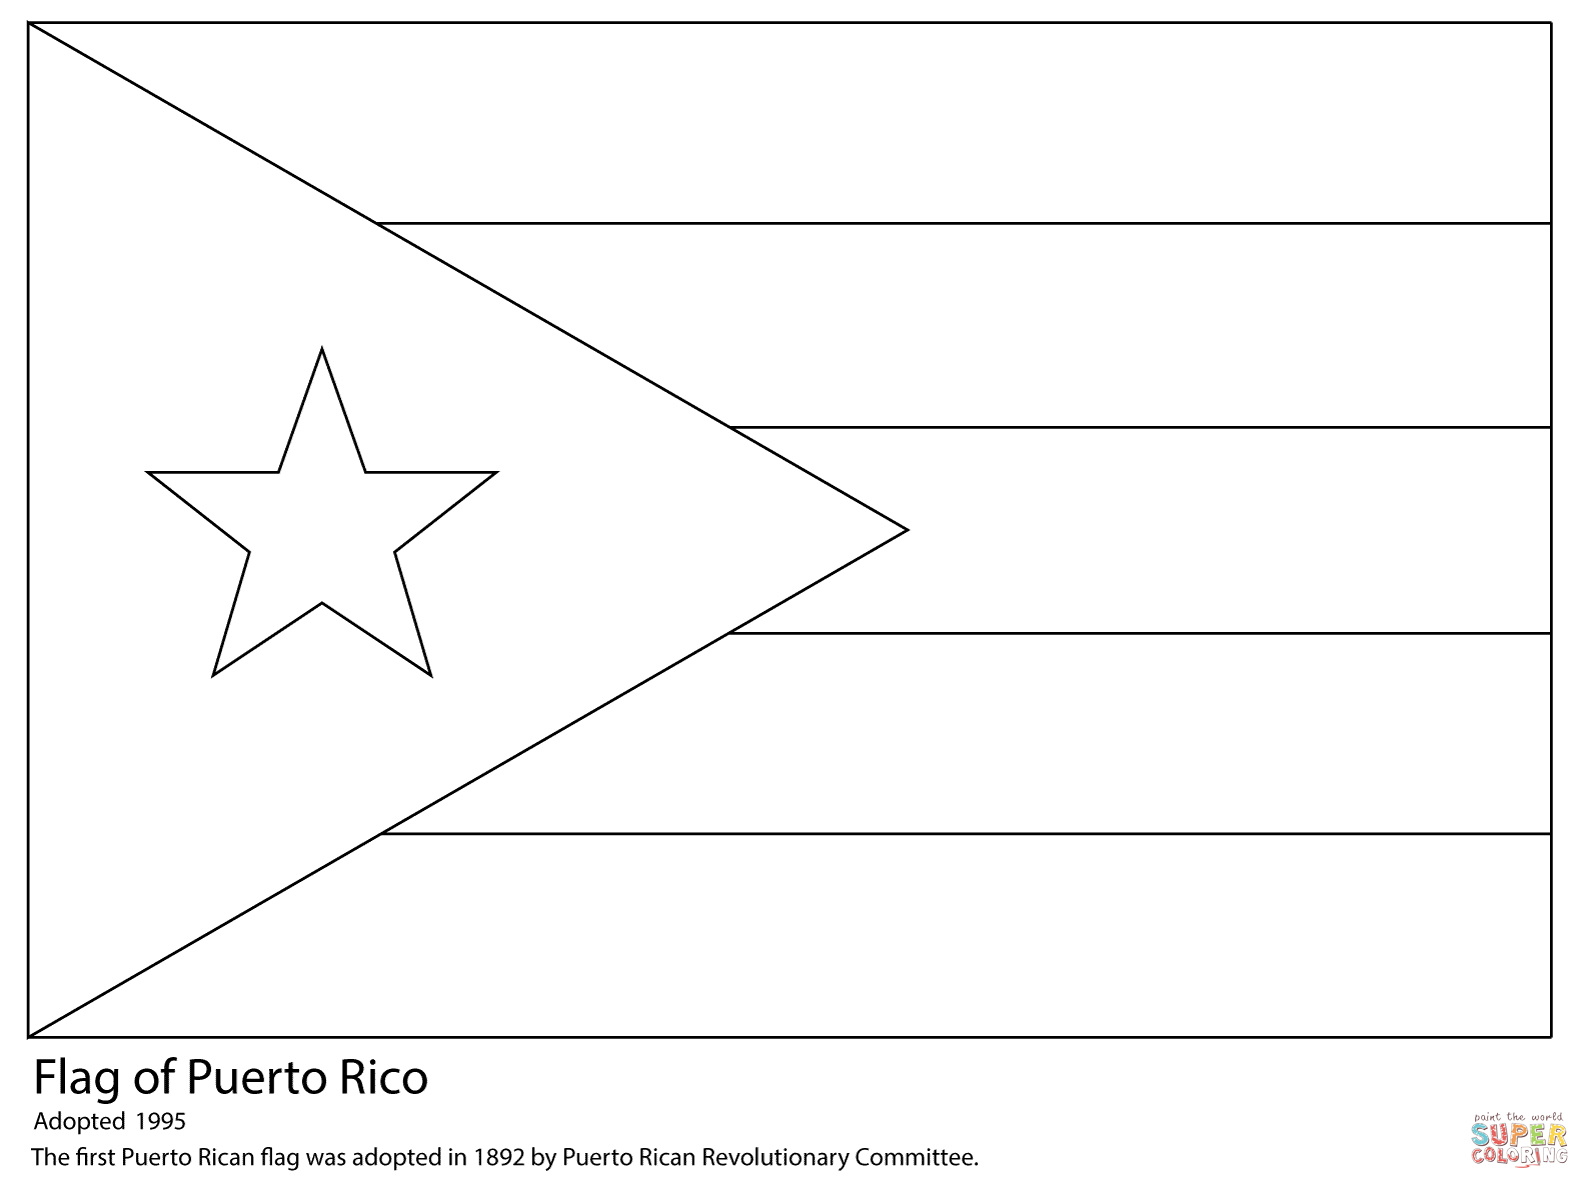 puerto rico flag to color puerto rico flag coloring page supercoloringcom rico flag puerto color to